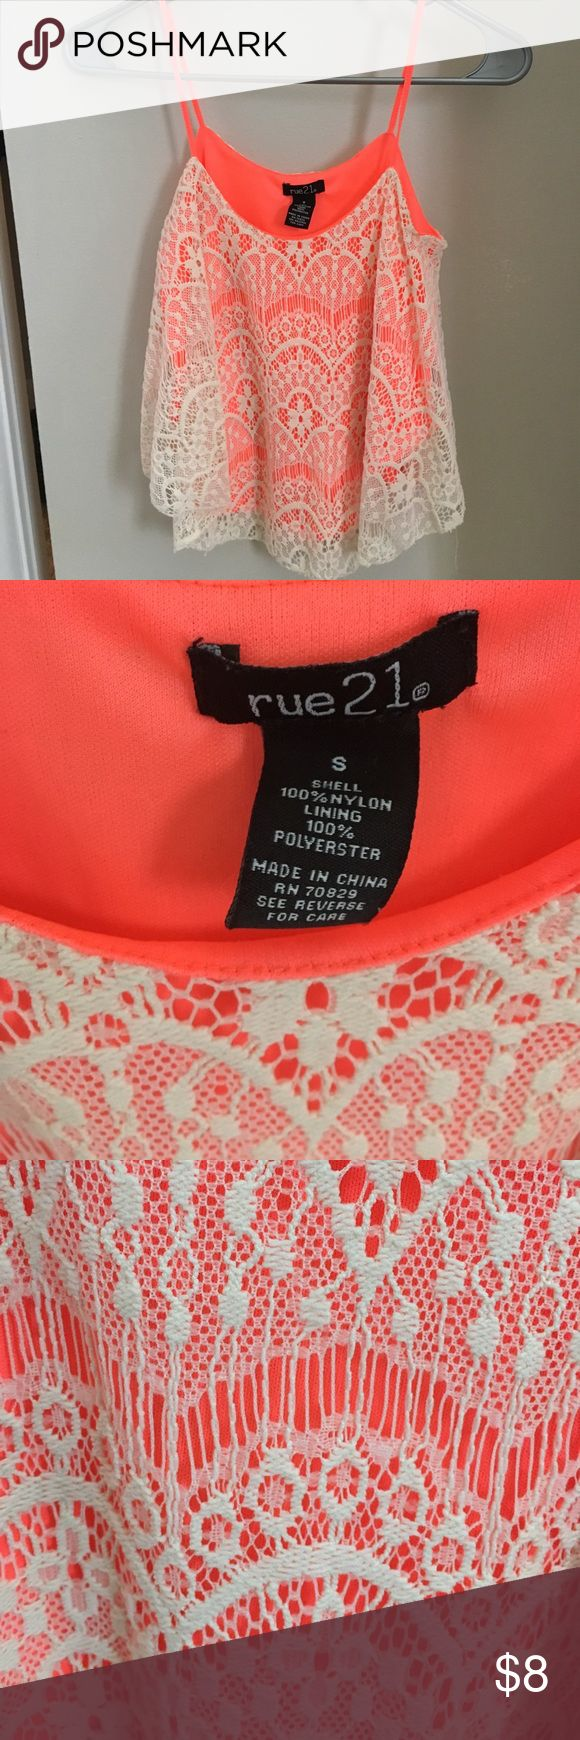 Flowy neon orange crop top Flowy crop top perfect for summer! Only worn a couple times, great condition. Rue 21 Tops Crop Tops